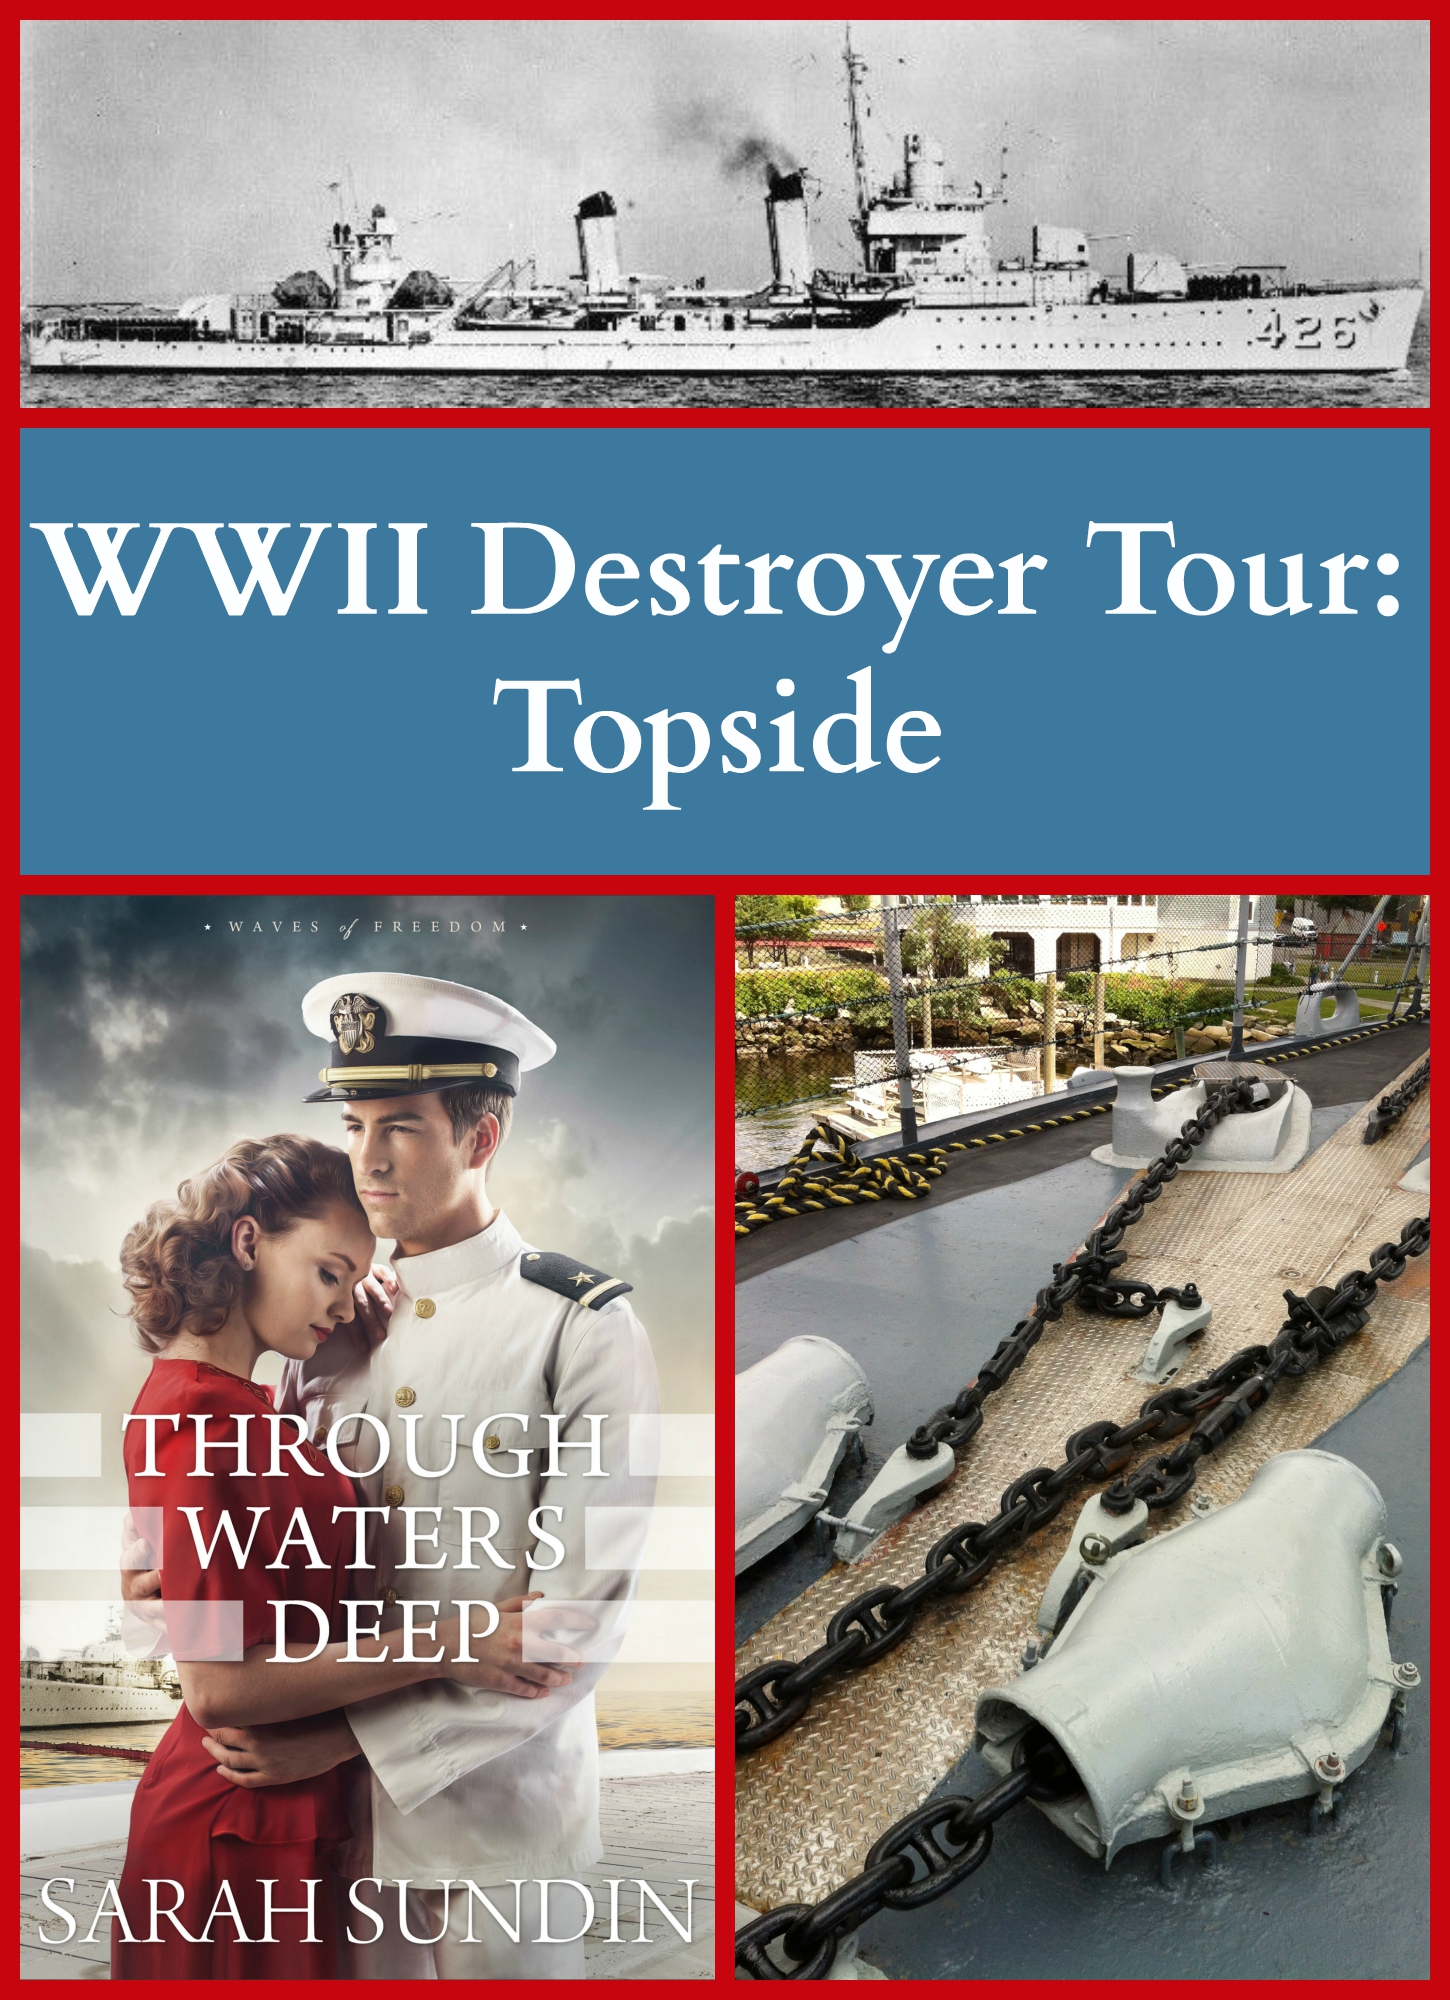 through waters deep destroyer tour topside